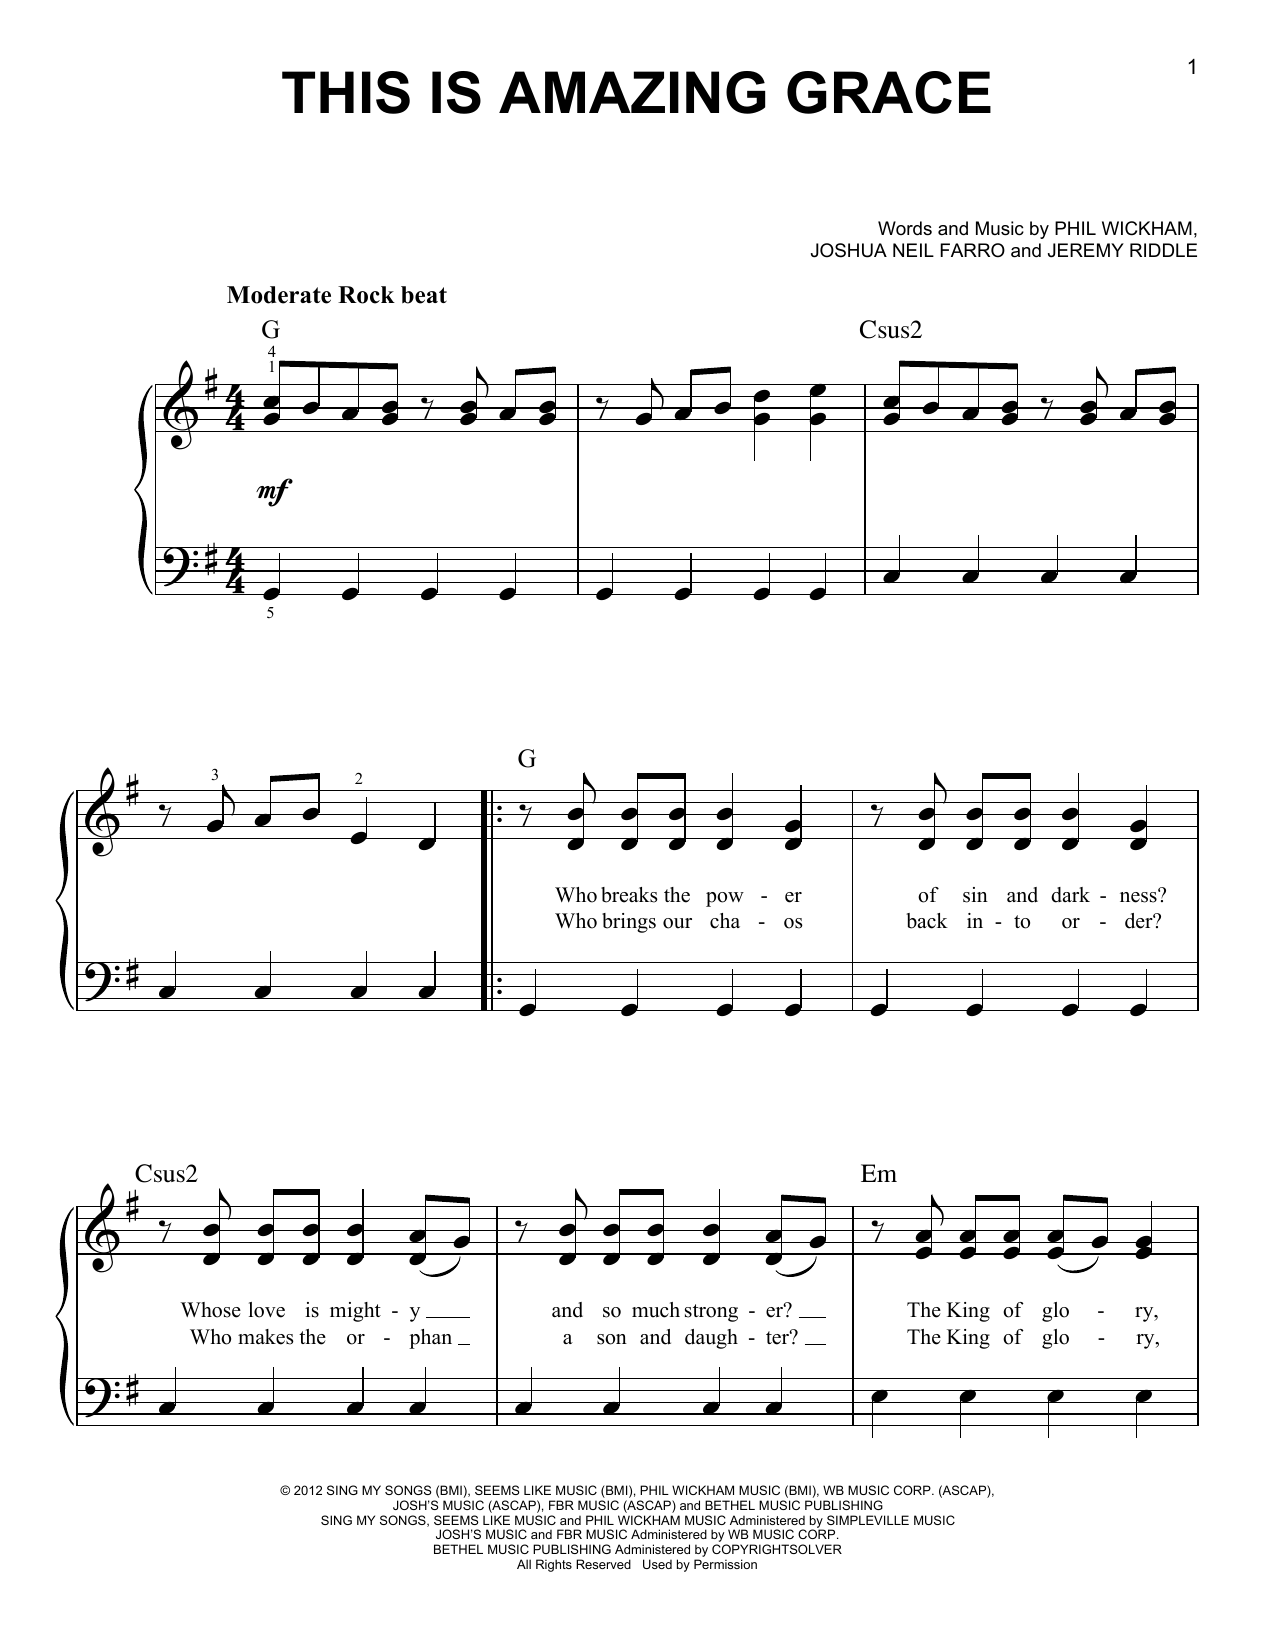 Phil Wickham This Is Amazing Grace Sheet Music Notes, Chords ...